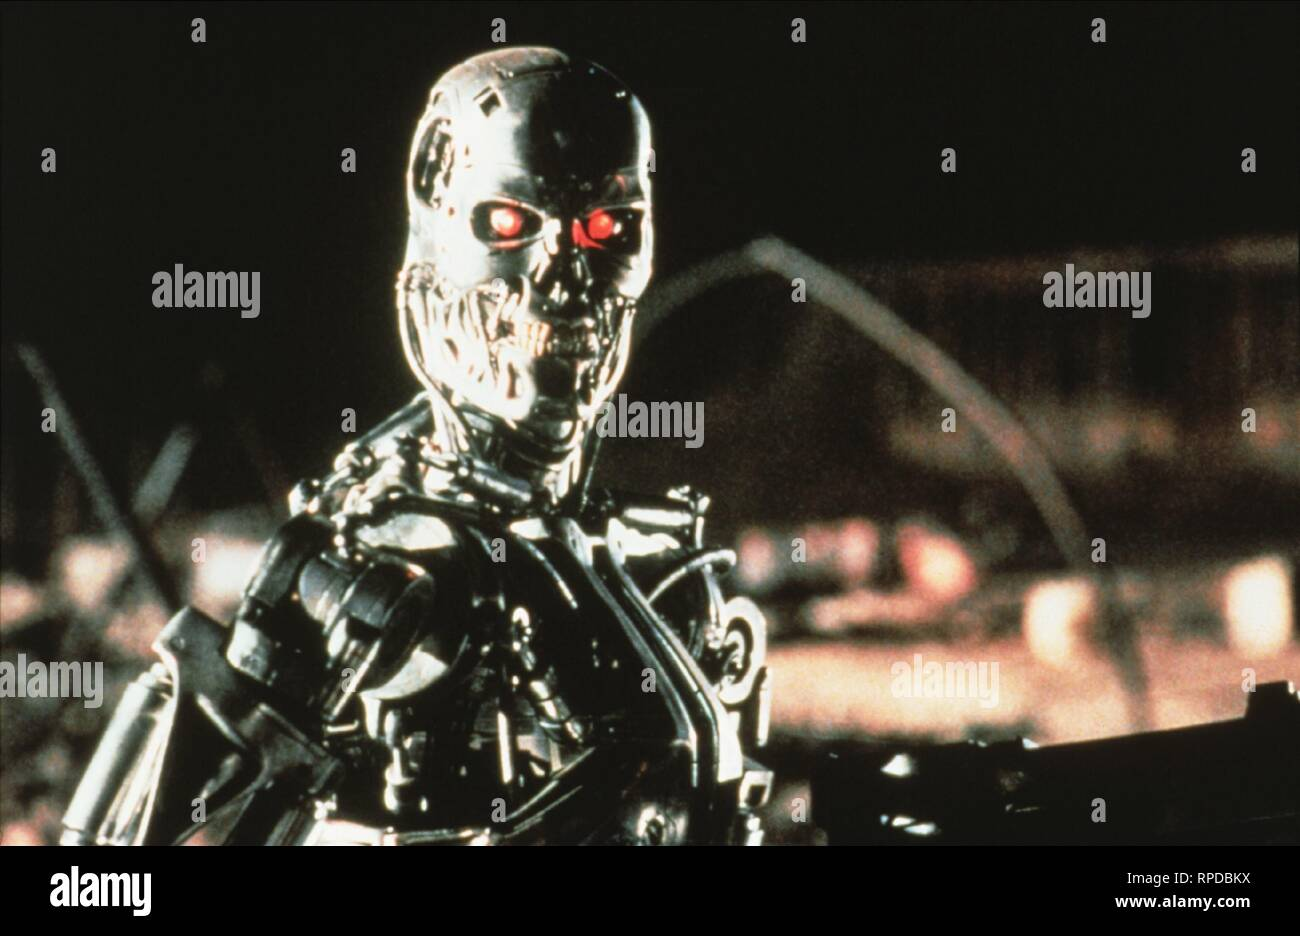 T-800, TERMINATOR 2: JUDGMENT DAY, 1991 - Stock Image